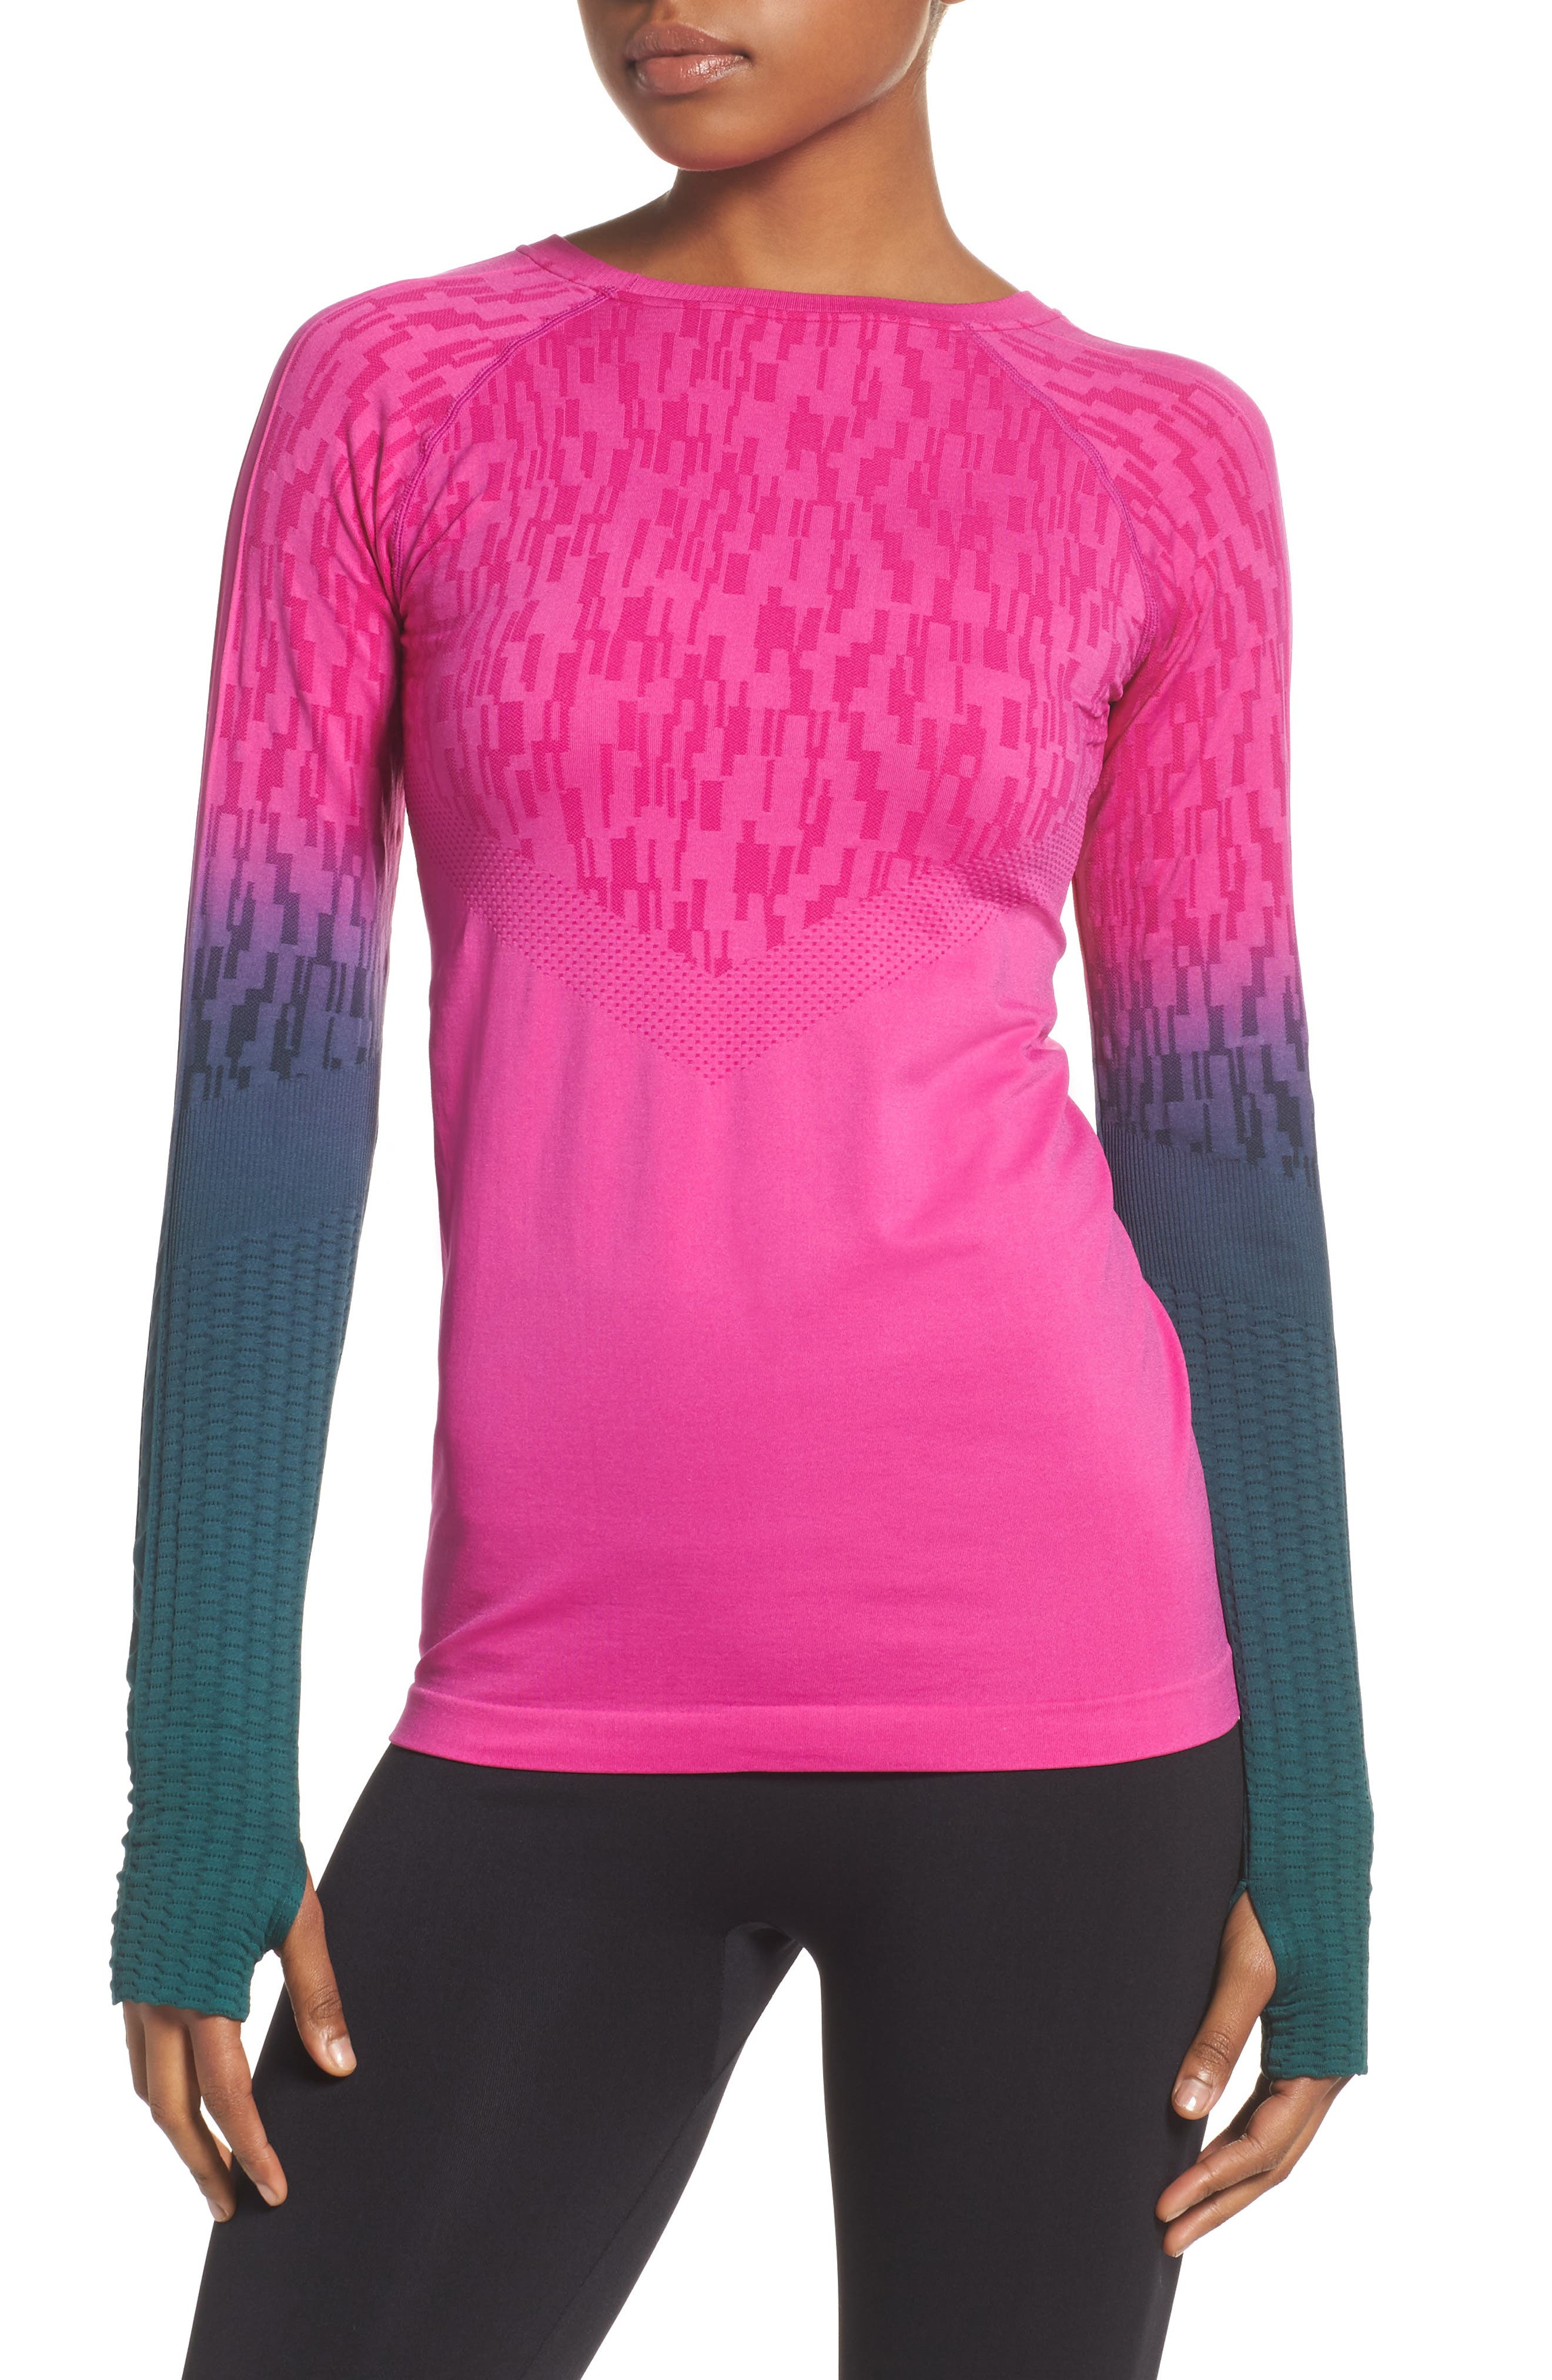 Main Image - Climawear Odyssey Running Tee